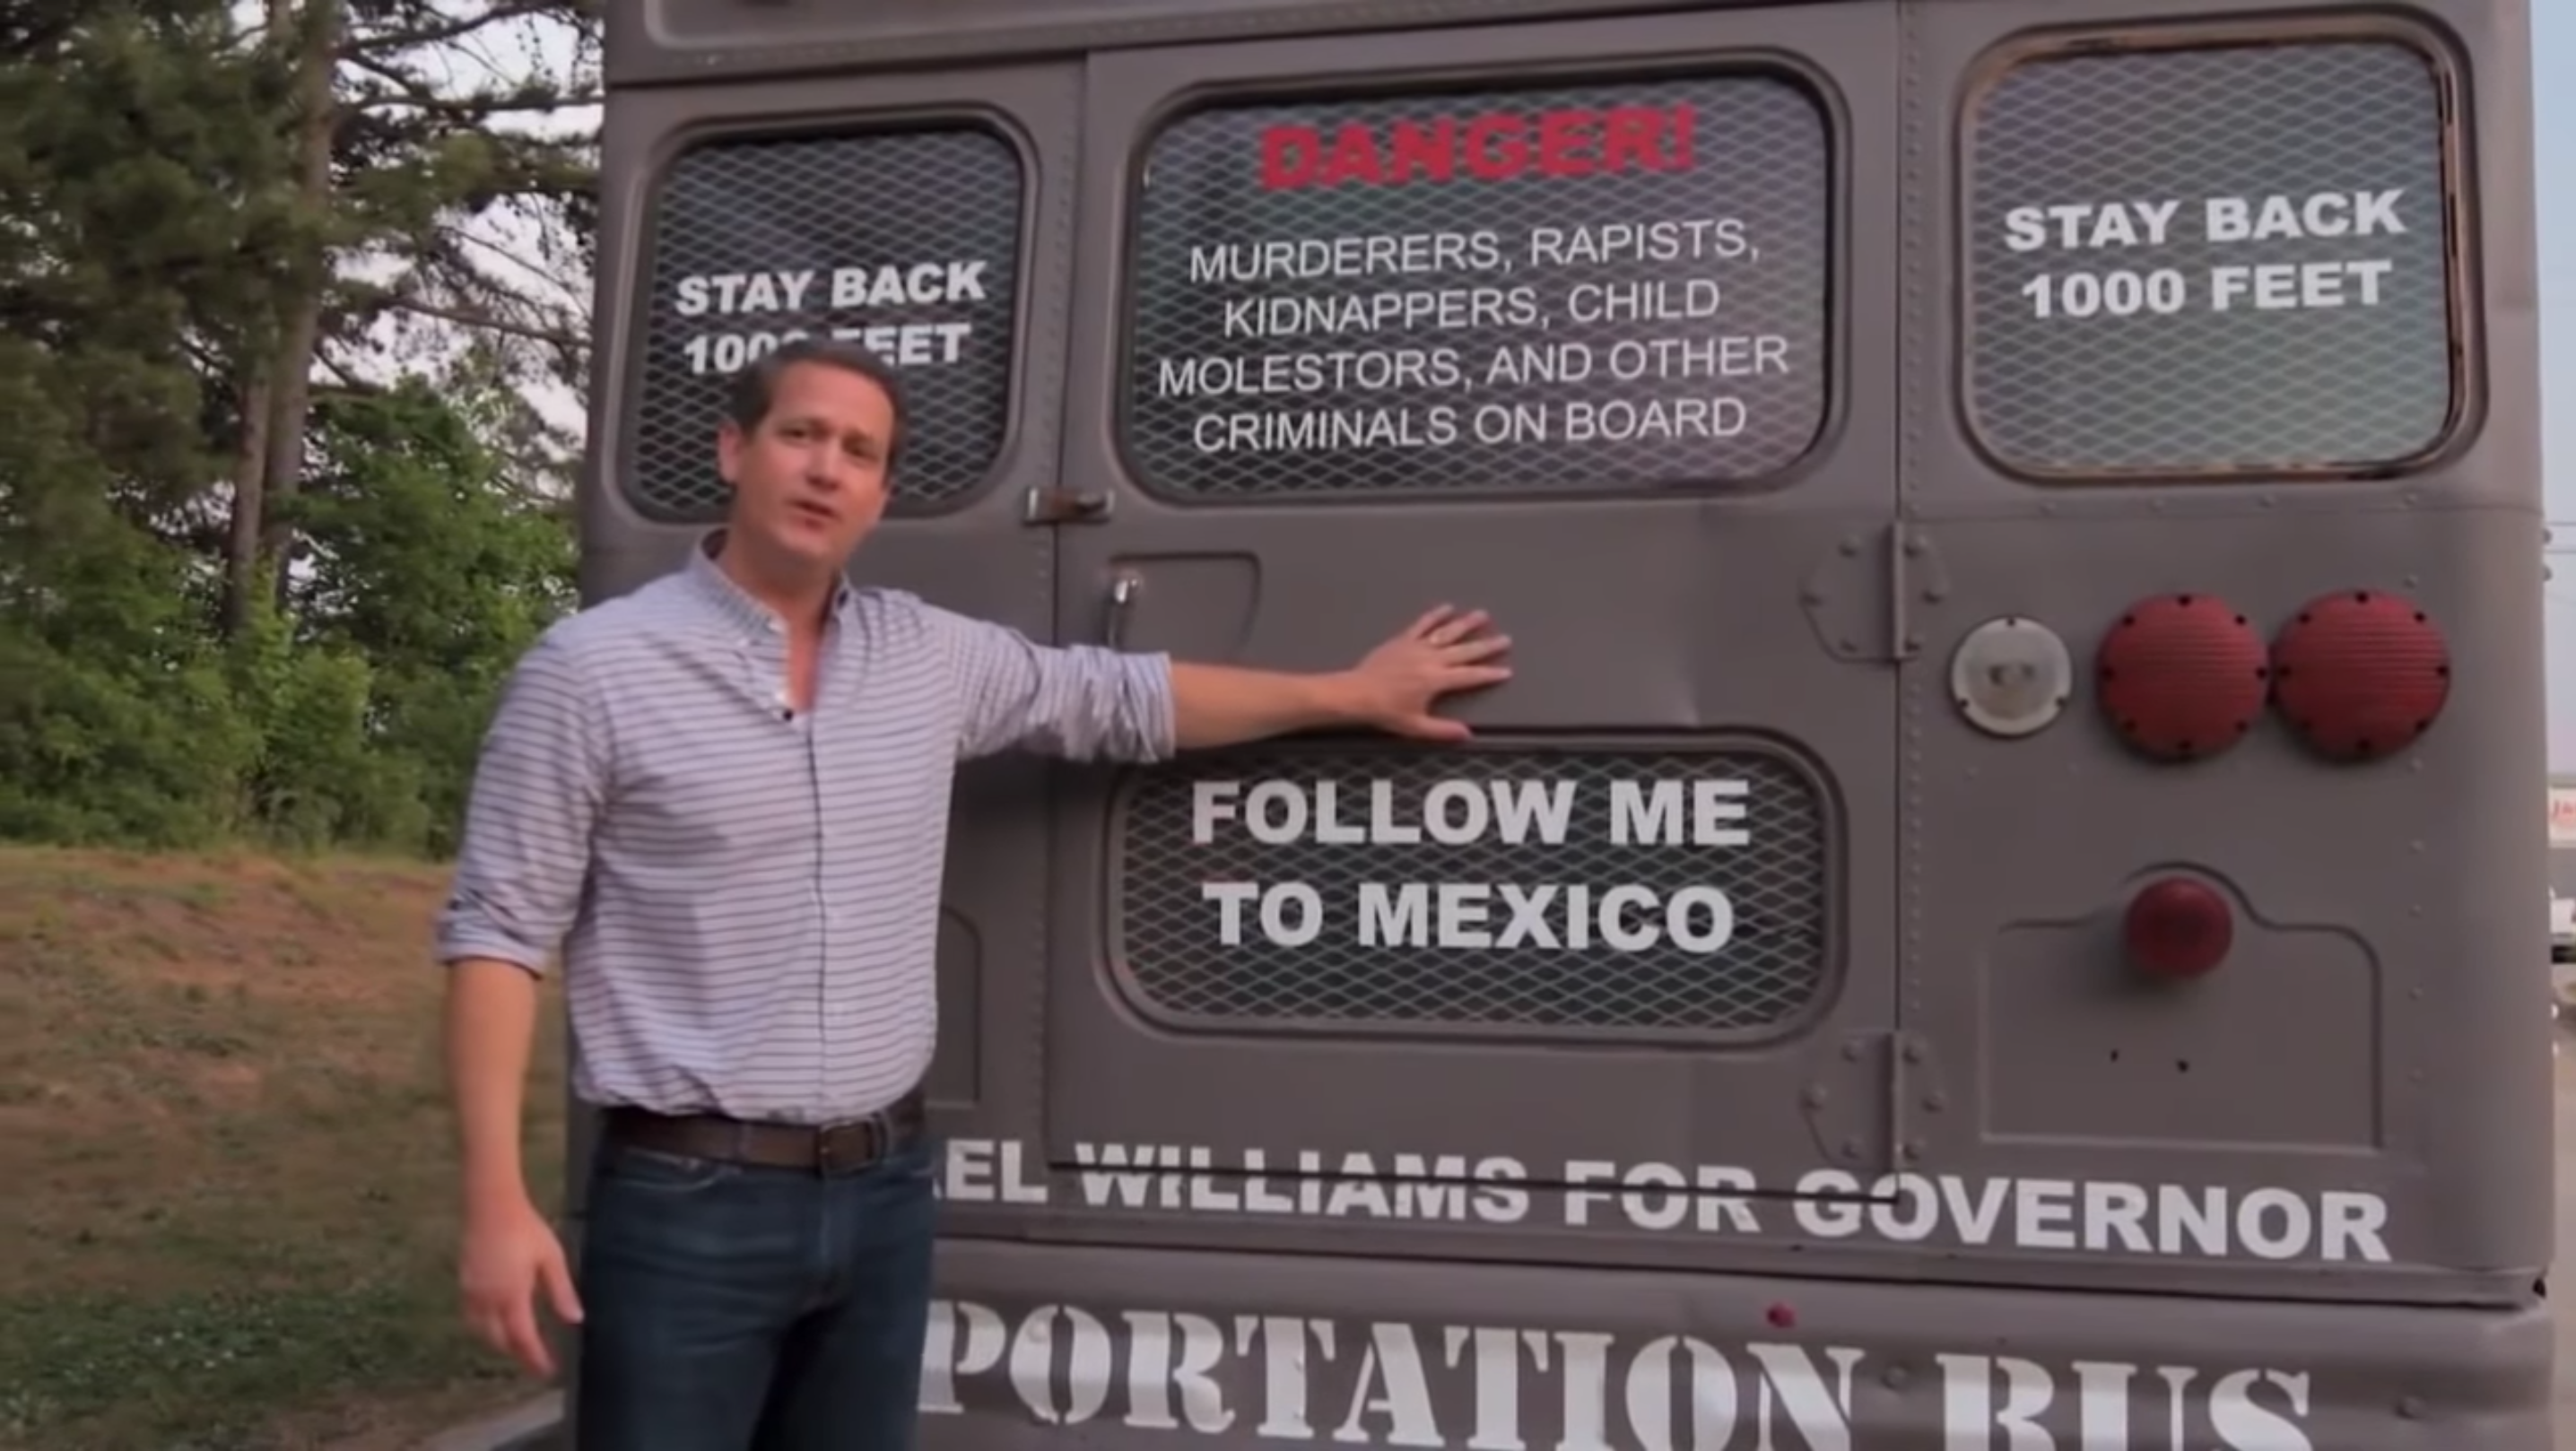 """Georgia state Sen. Michael Williams stands in front of a gray bus and places his hand on the back door over the words """"FOLLOW ME TO MEXICO"""""""